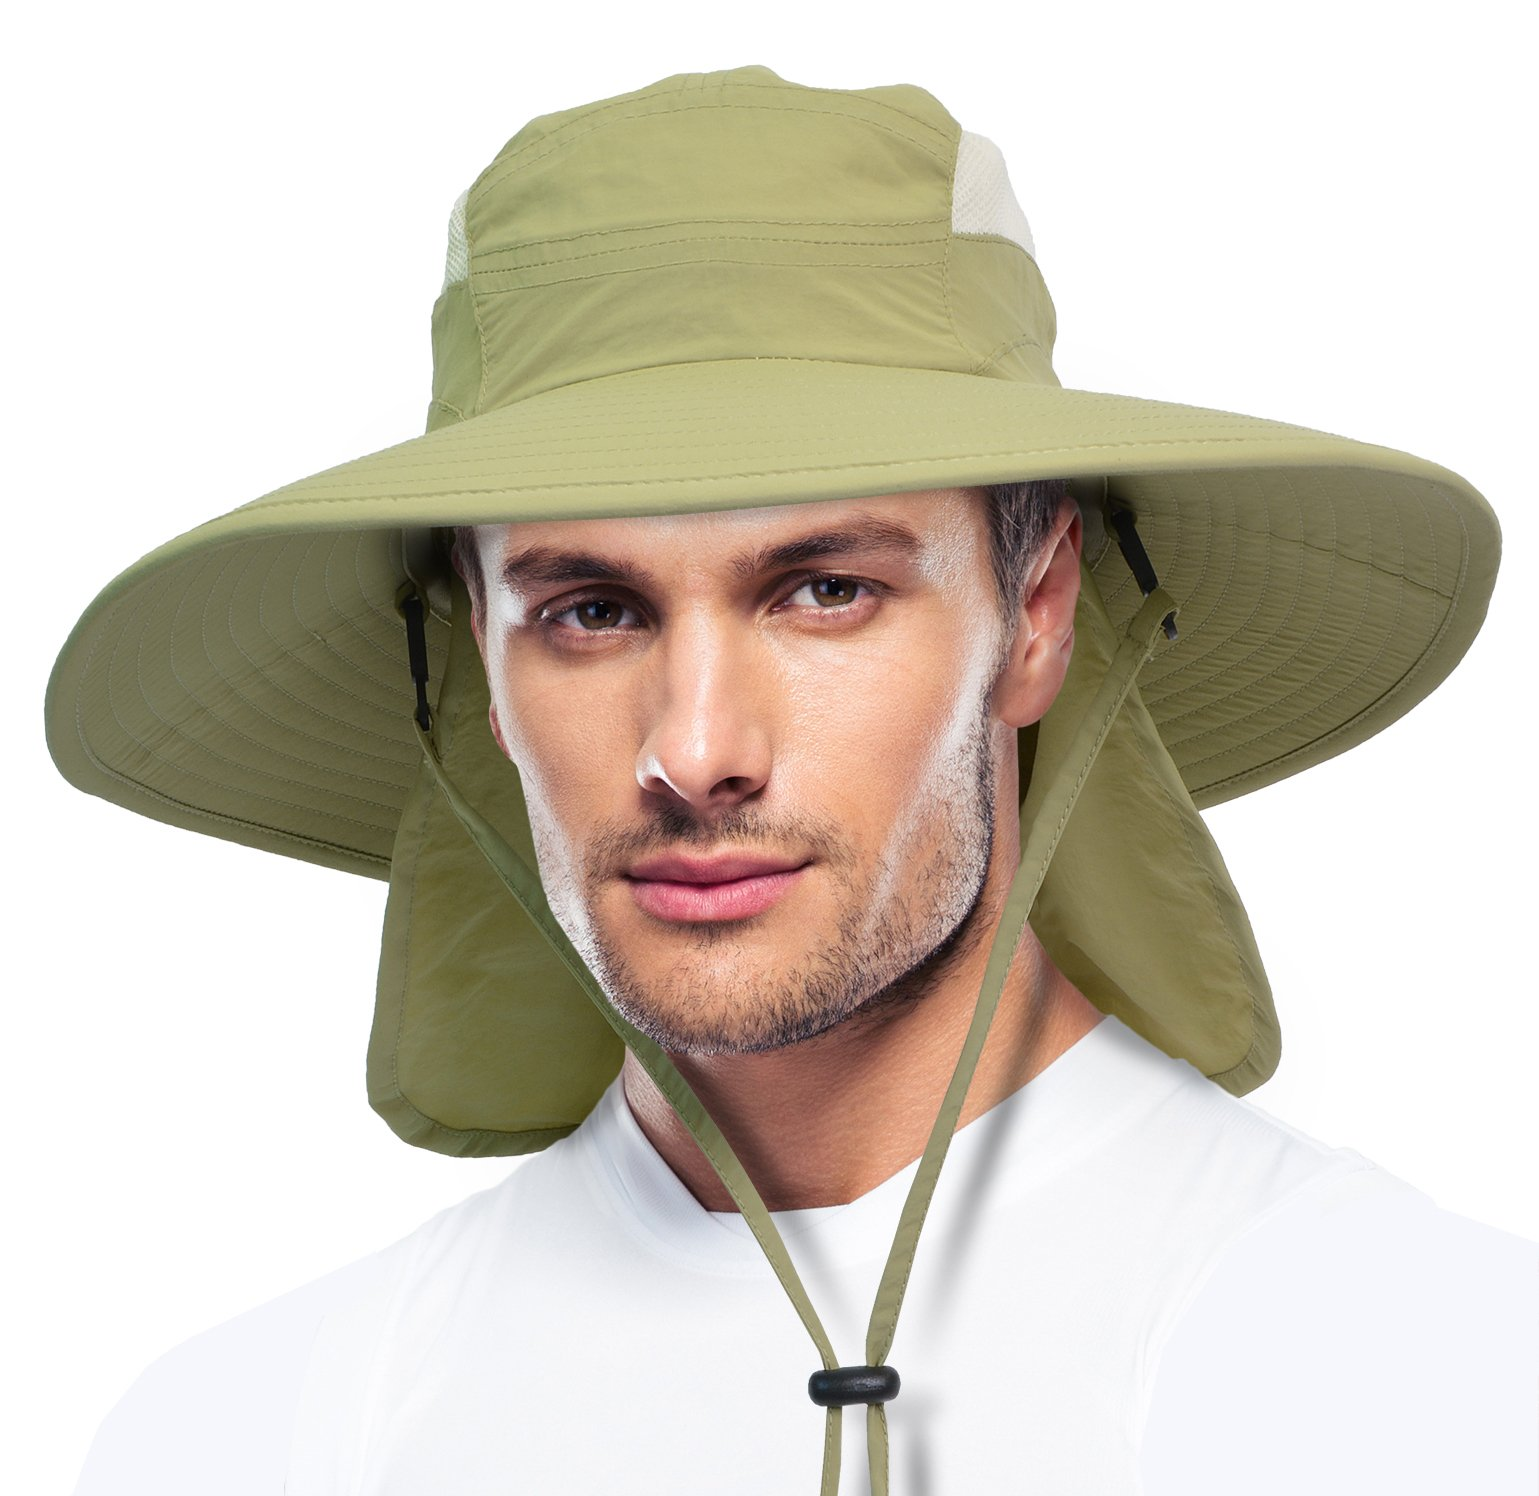 Solaris Fishing Cap UV Sun Protection Wide Brim Hat with Removable Bill Neck Flap for Men Women Safari Hiking Hunting Boating Camping and Outdoor Adventures